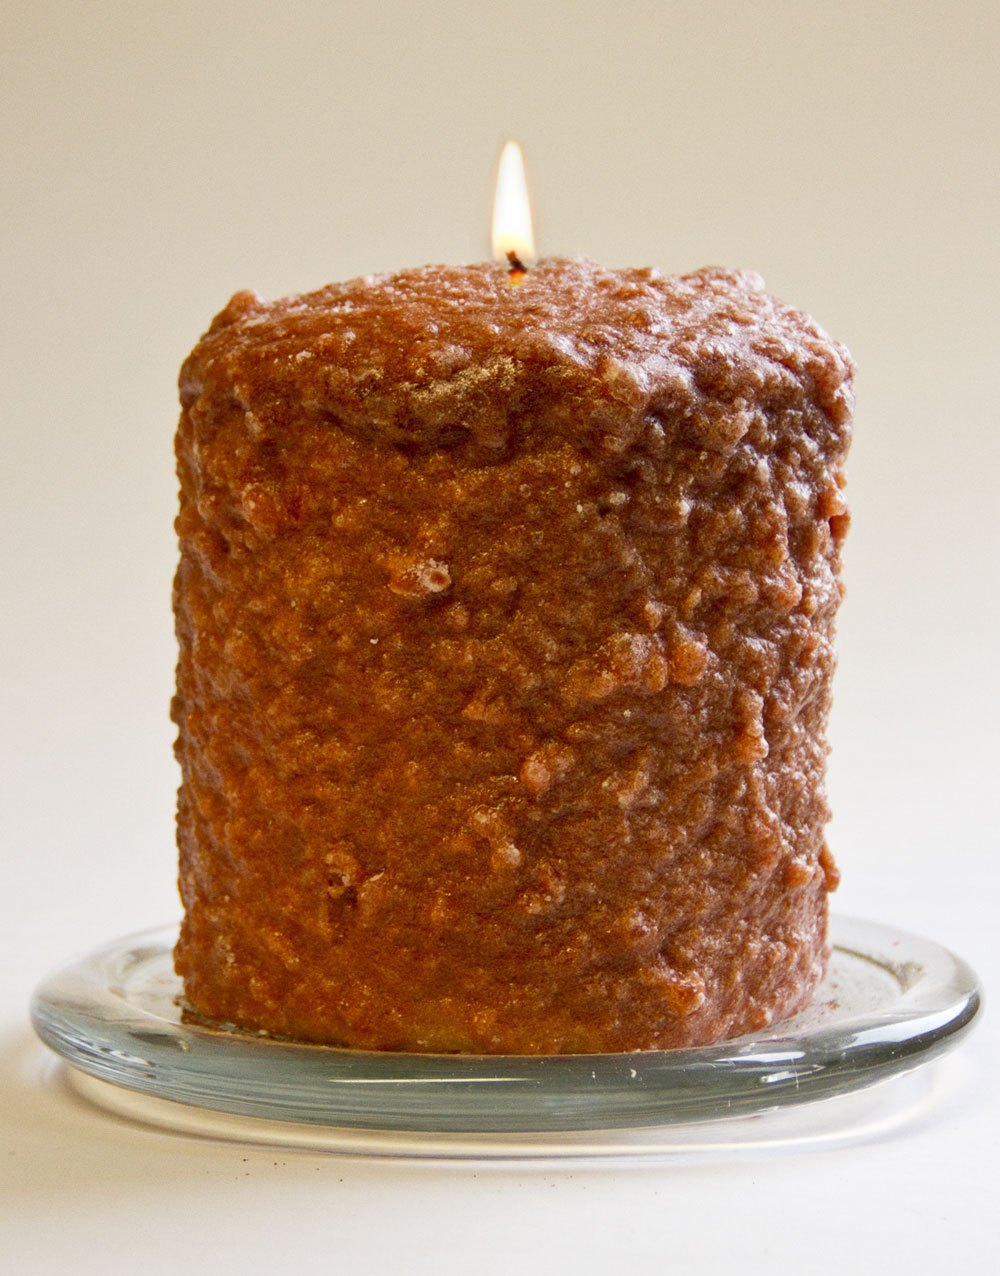 Cake Candle - Warm Glow - Gingerbread Cookie - 5in x 4.5in